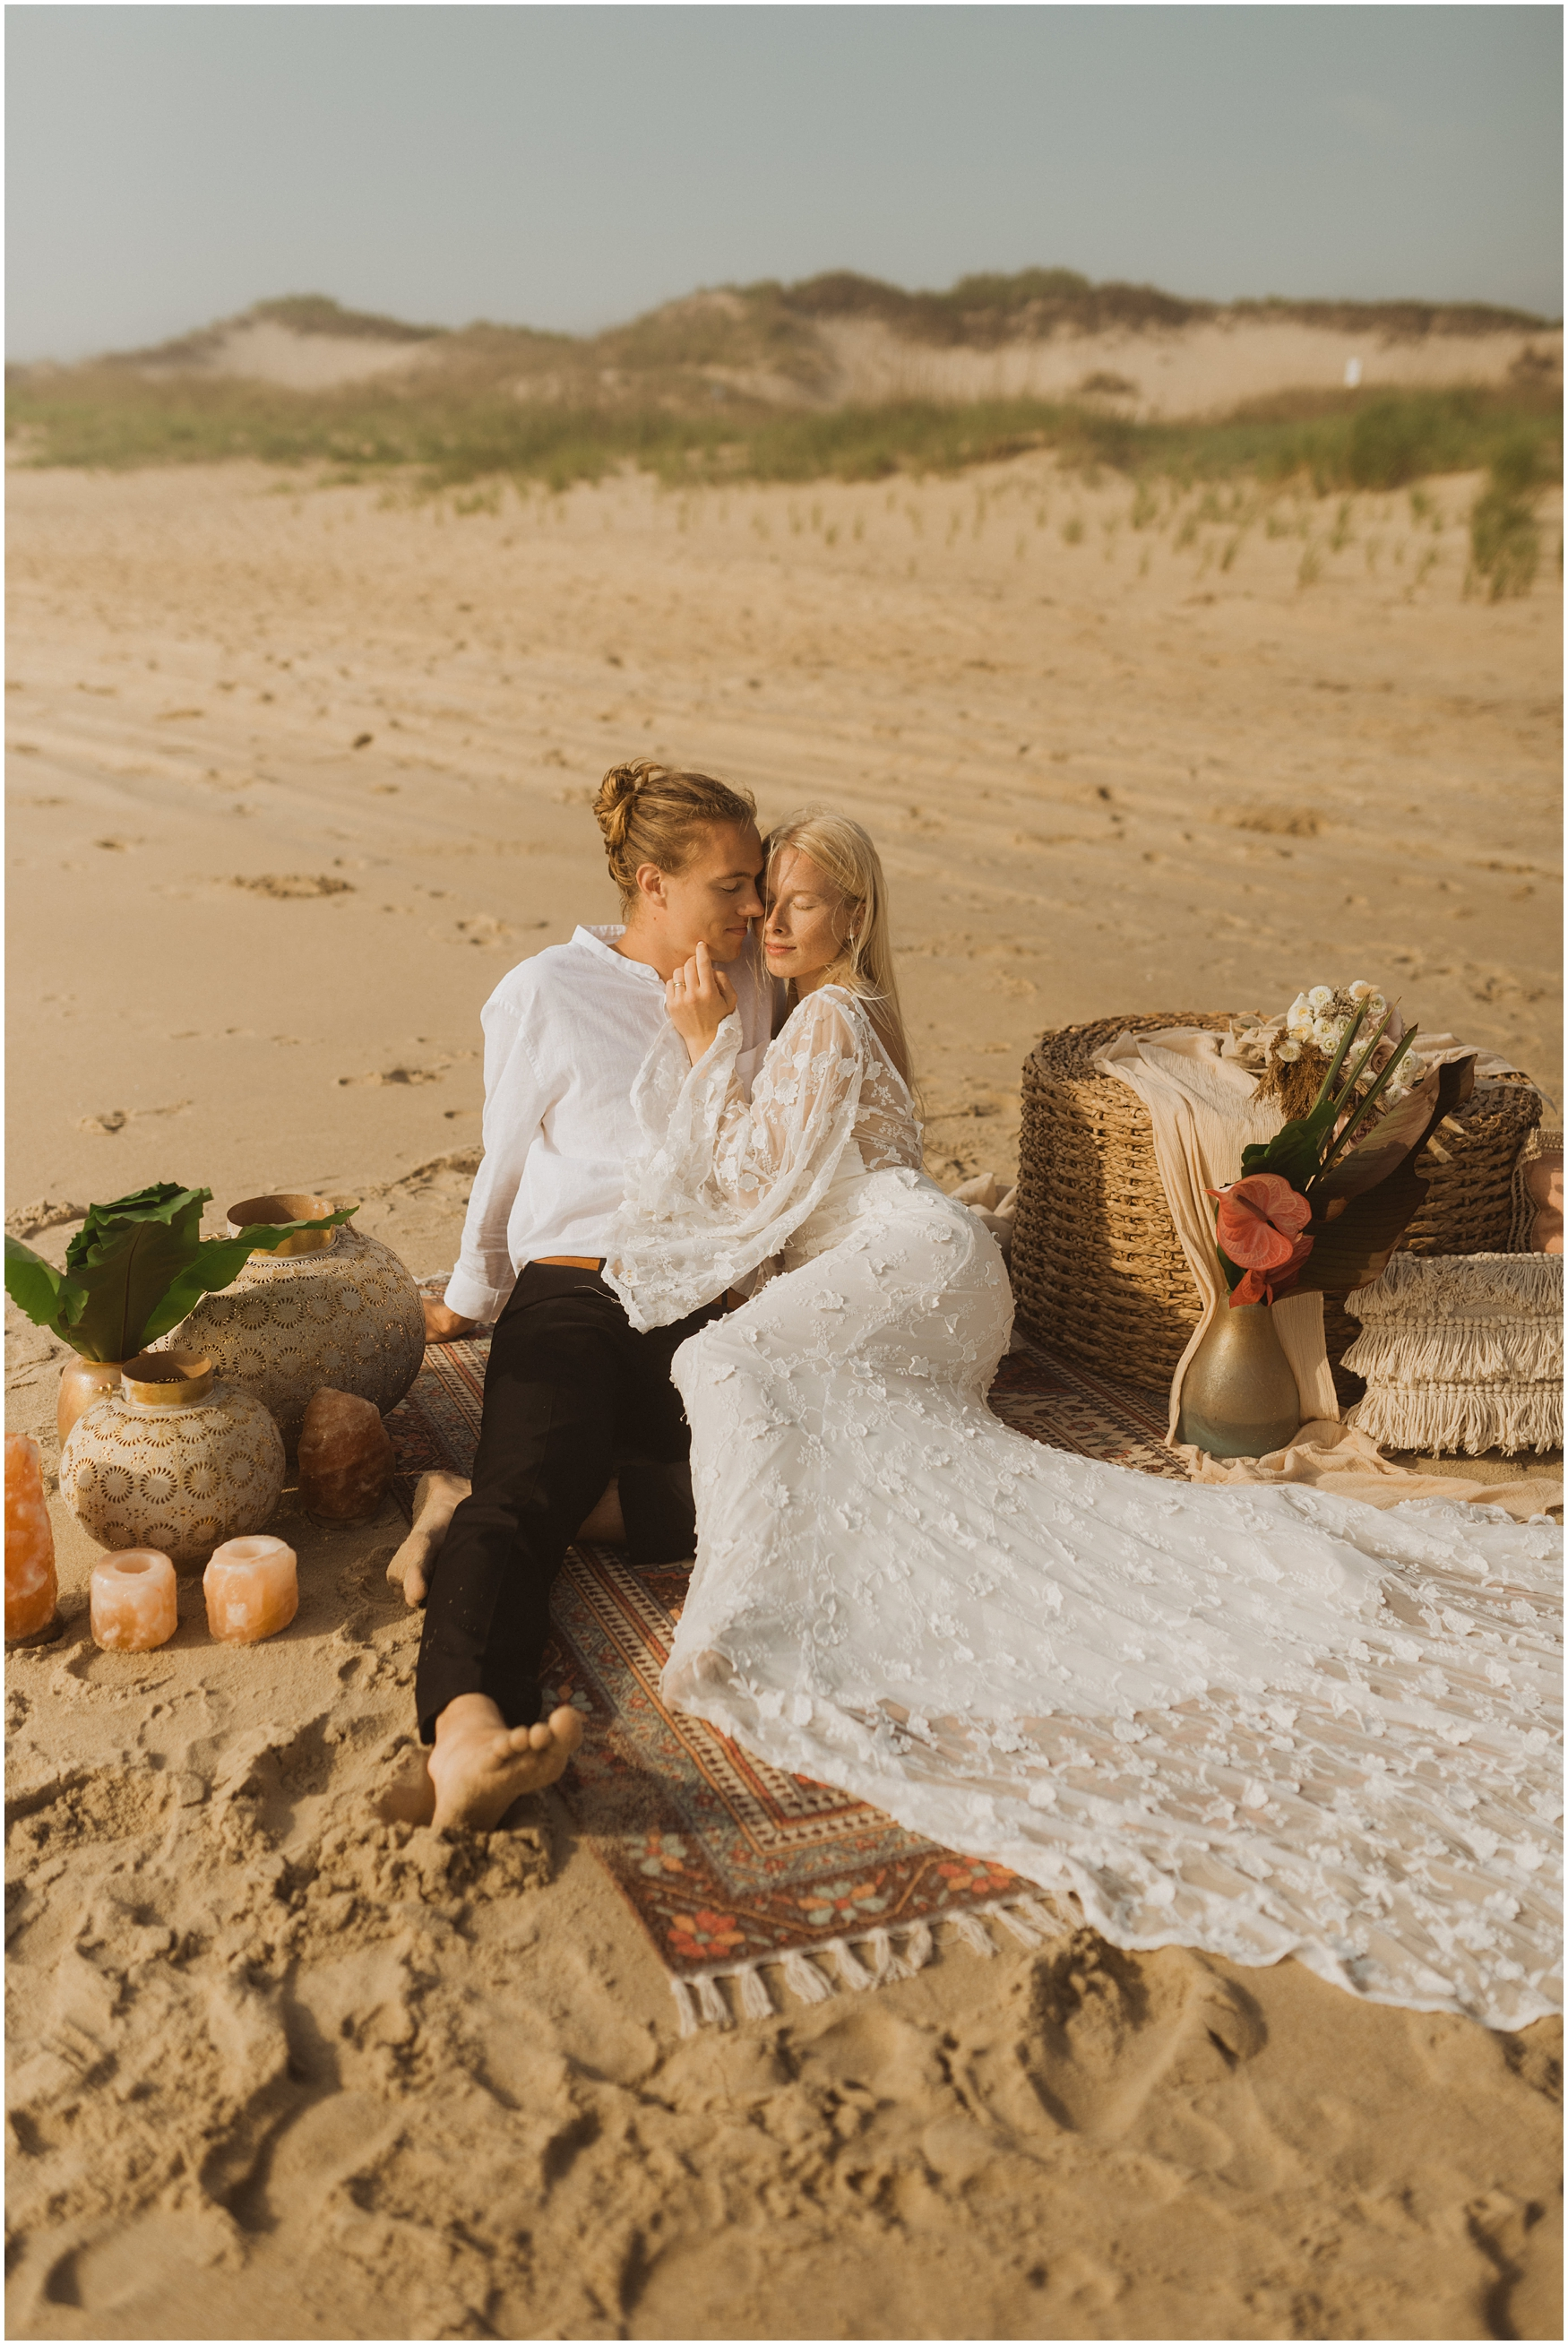 Hannah_Baldwin_Photography_Virginia_Beach_Elopement_Sunrise_0218.jpg